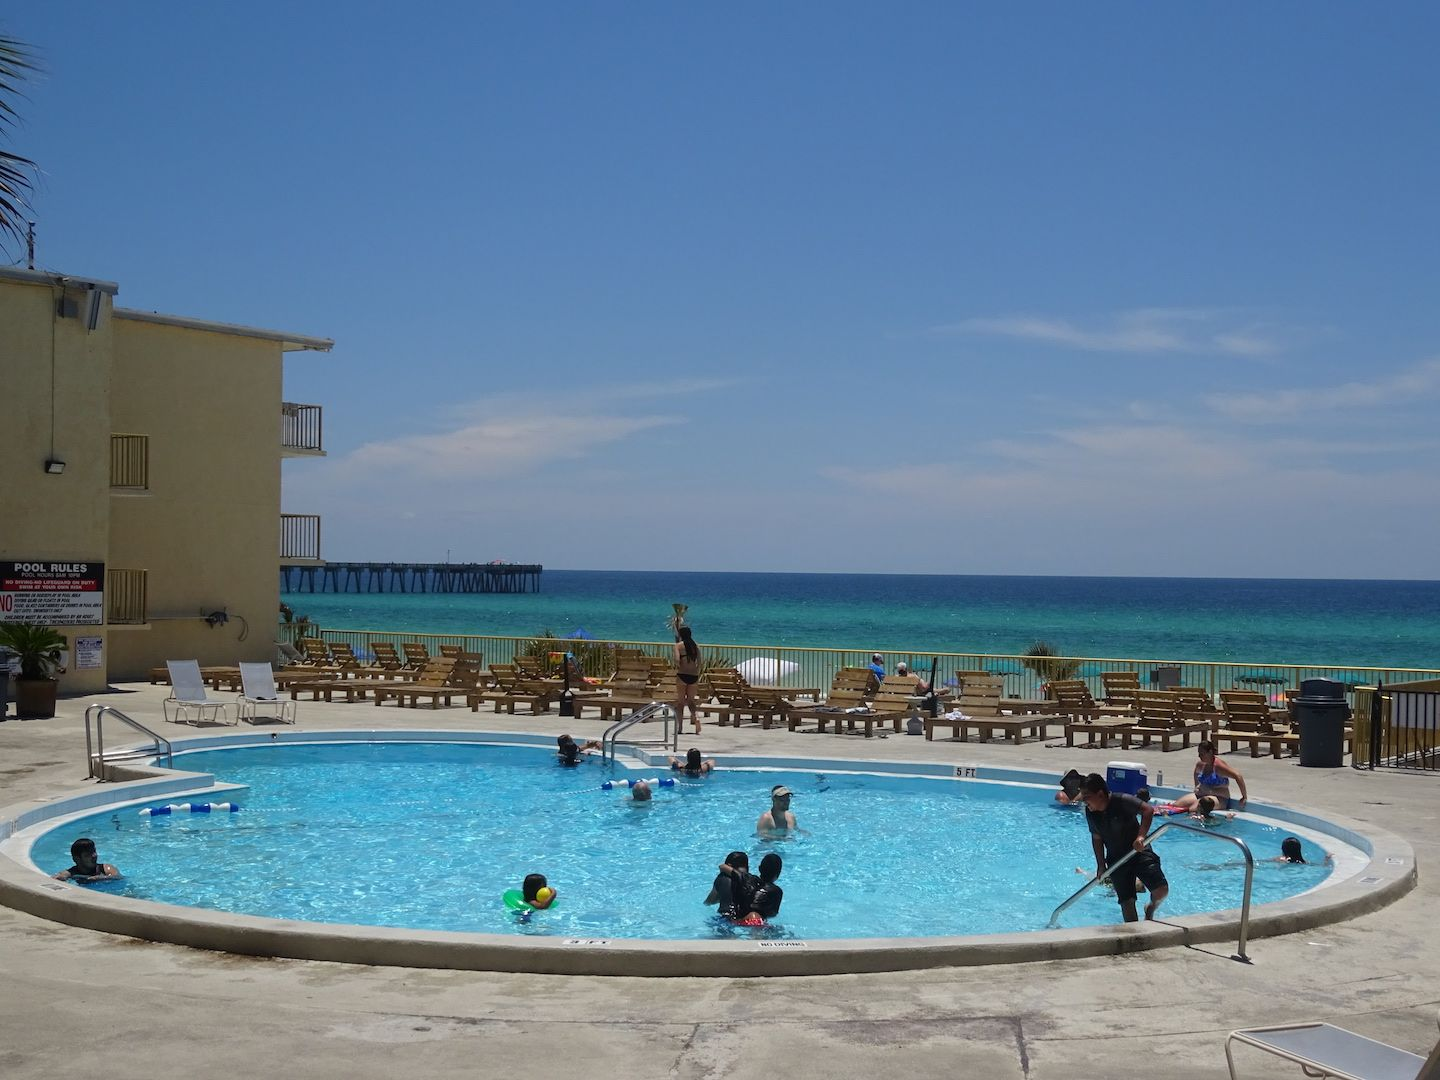 Beat The Heat In The Chateau S Pool Which Overlooks The Gulf Of Mexico Panama City Beach Fl Panama City Beach Hotels Panama City Panama Panama City Beach